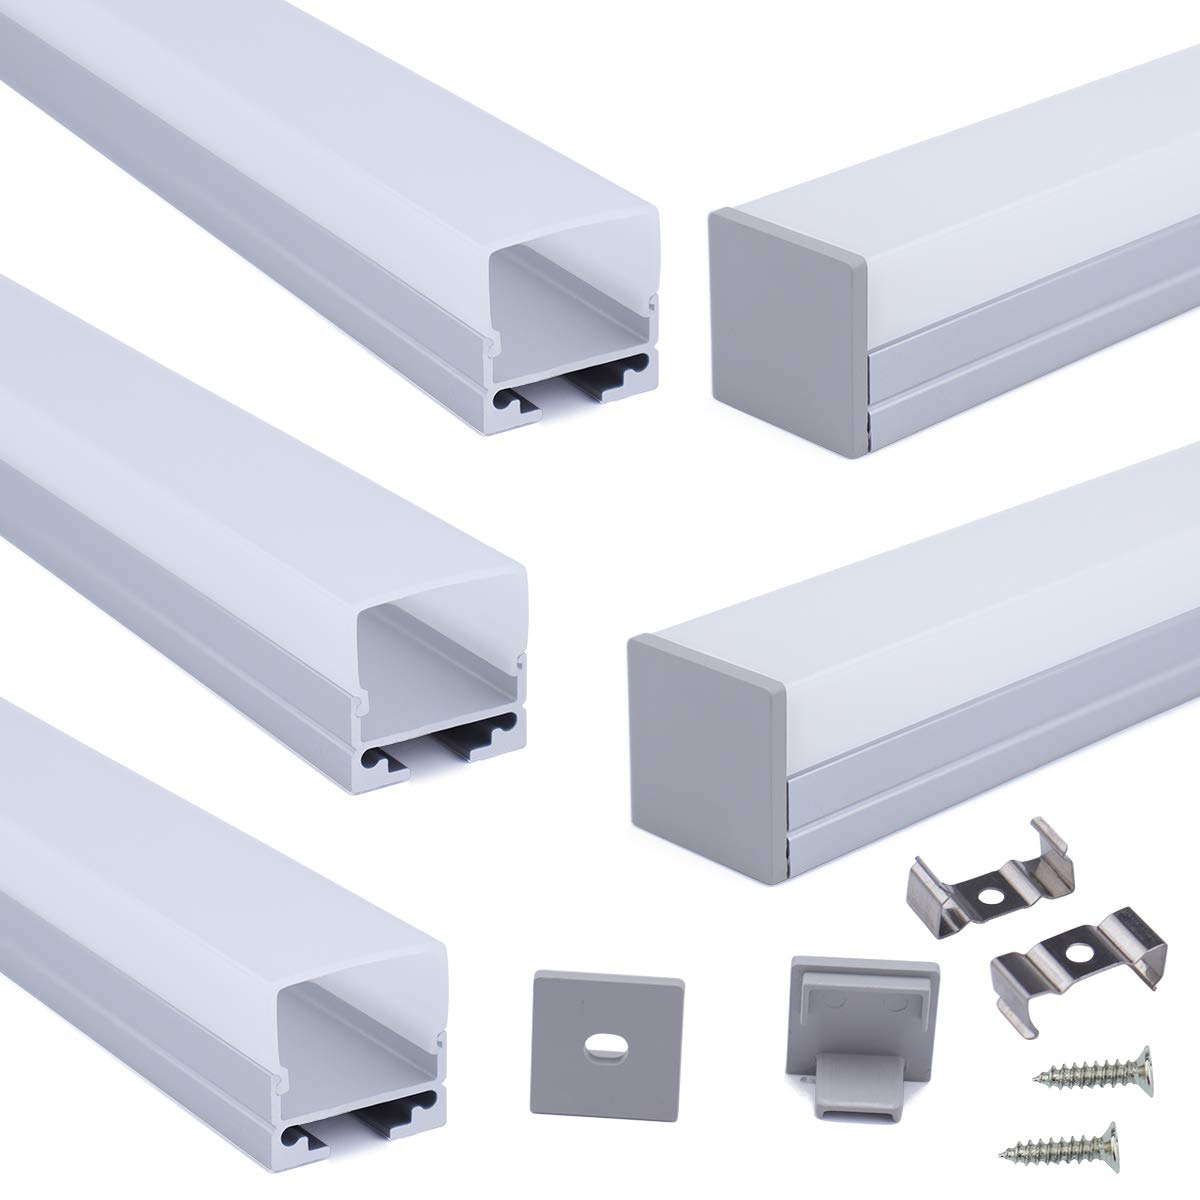 Muzata 5-Pack 3.3ft/1Meter 19.7x19.5MM U Shape LED Aluminum Channel System with Cover, End Caps and Mounting Clips Aluminum Profile for LED Strip Light Installations U116 by Muzata